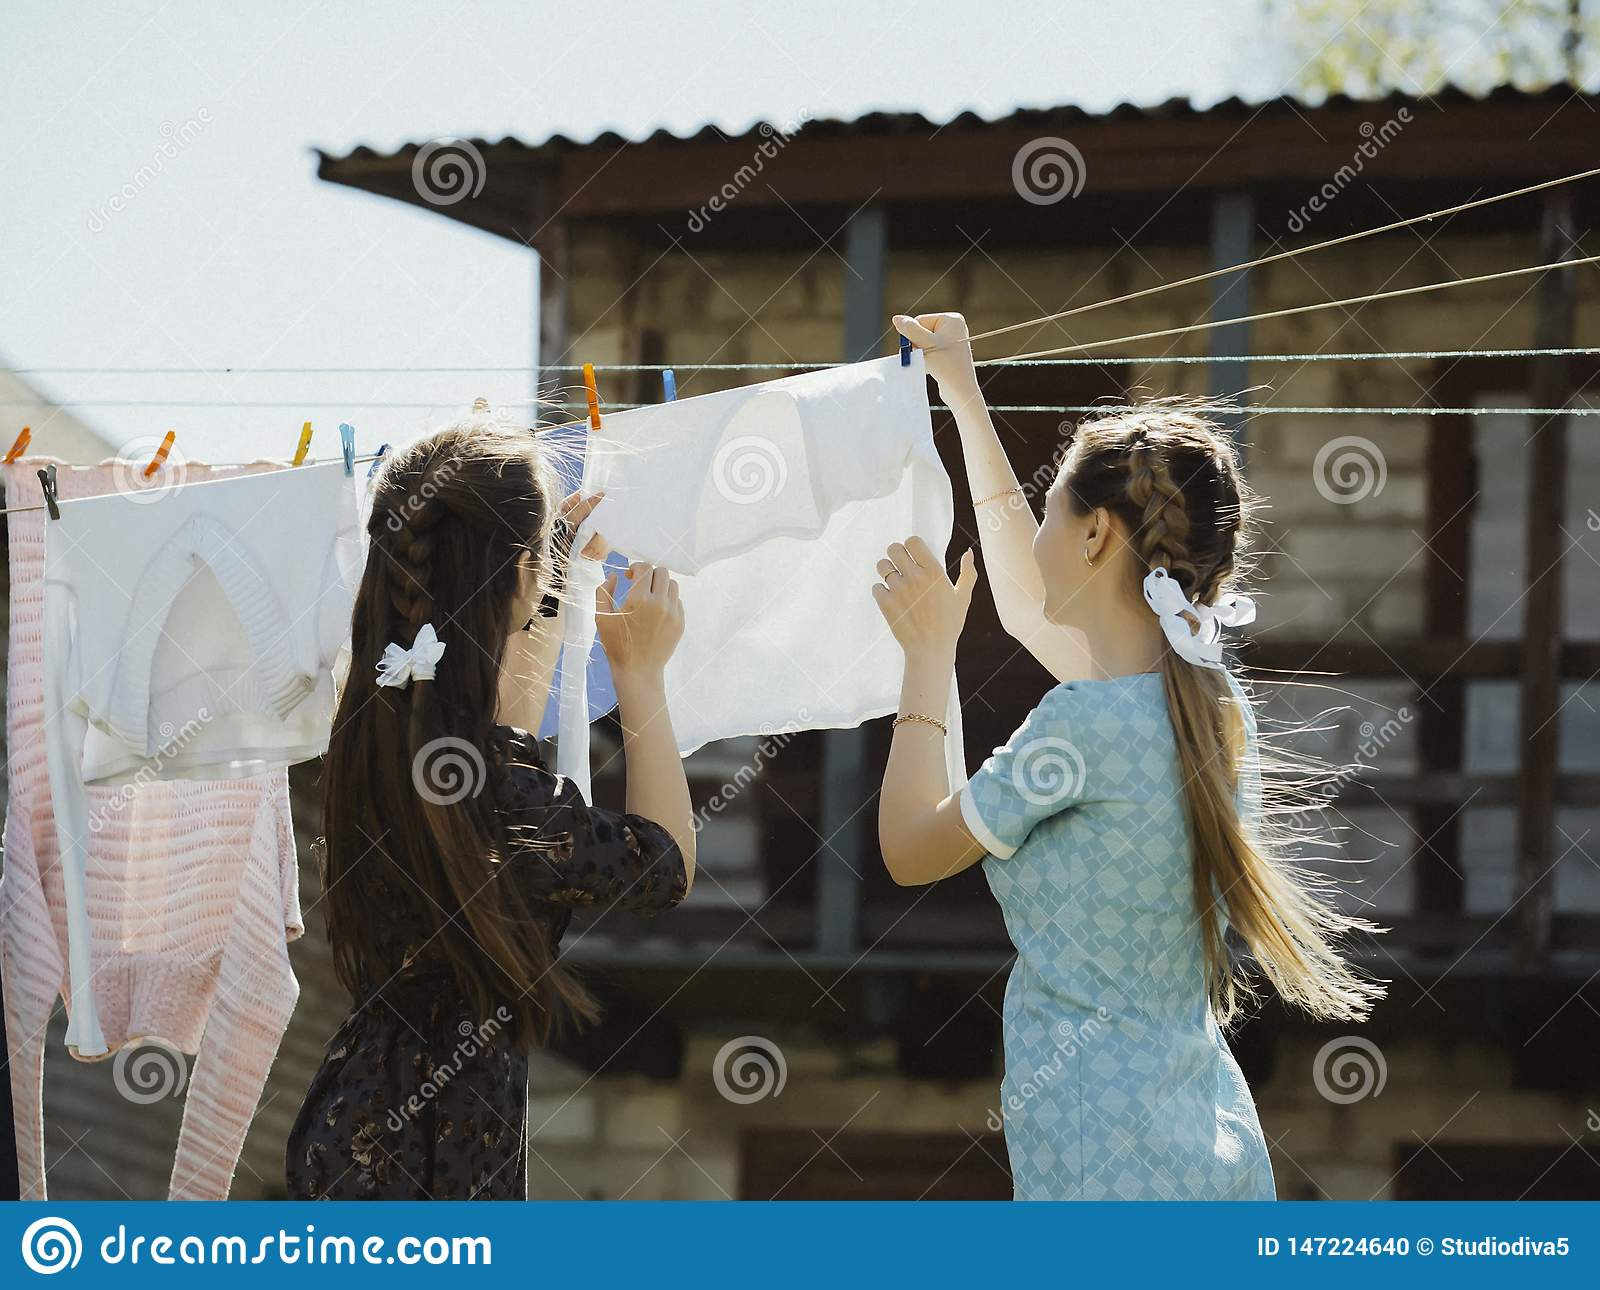 two girls dry clothes on the street.